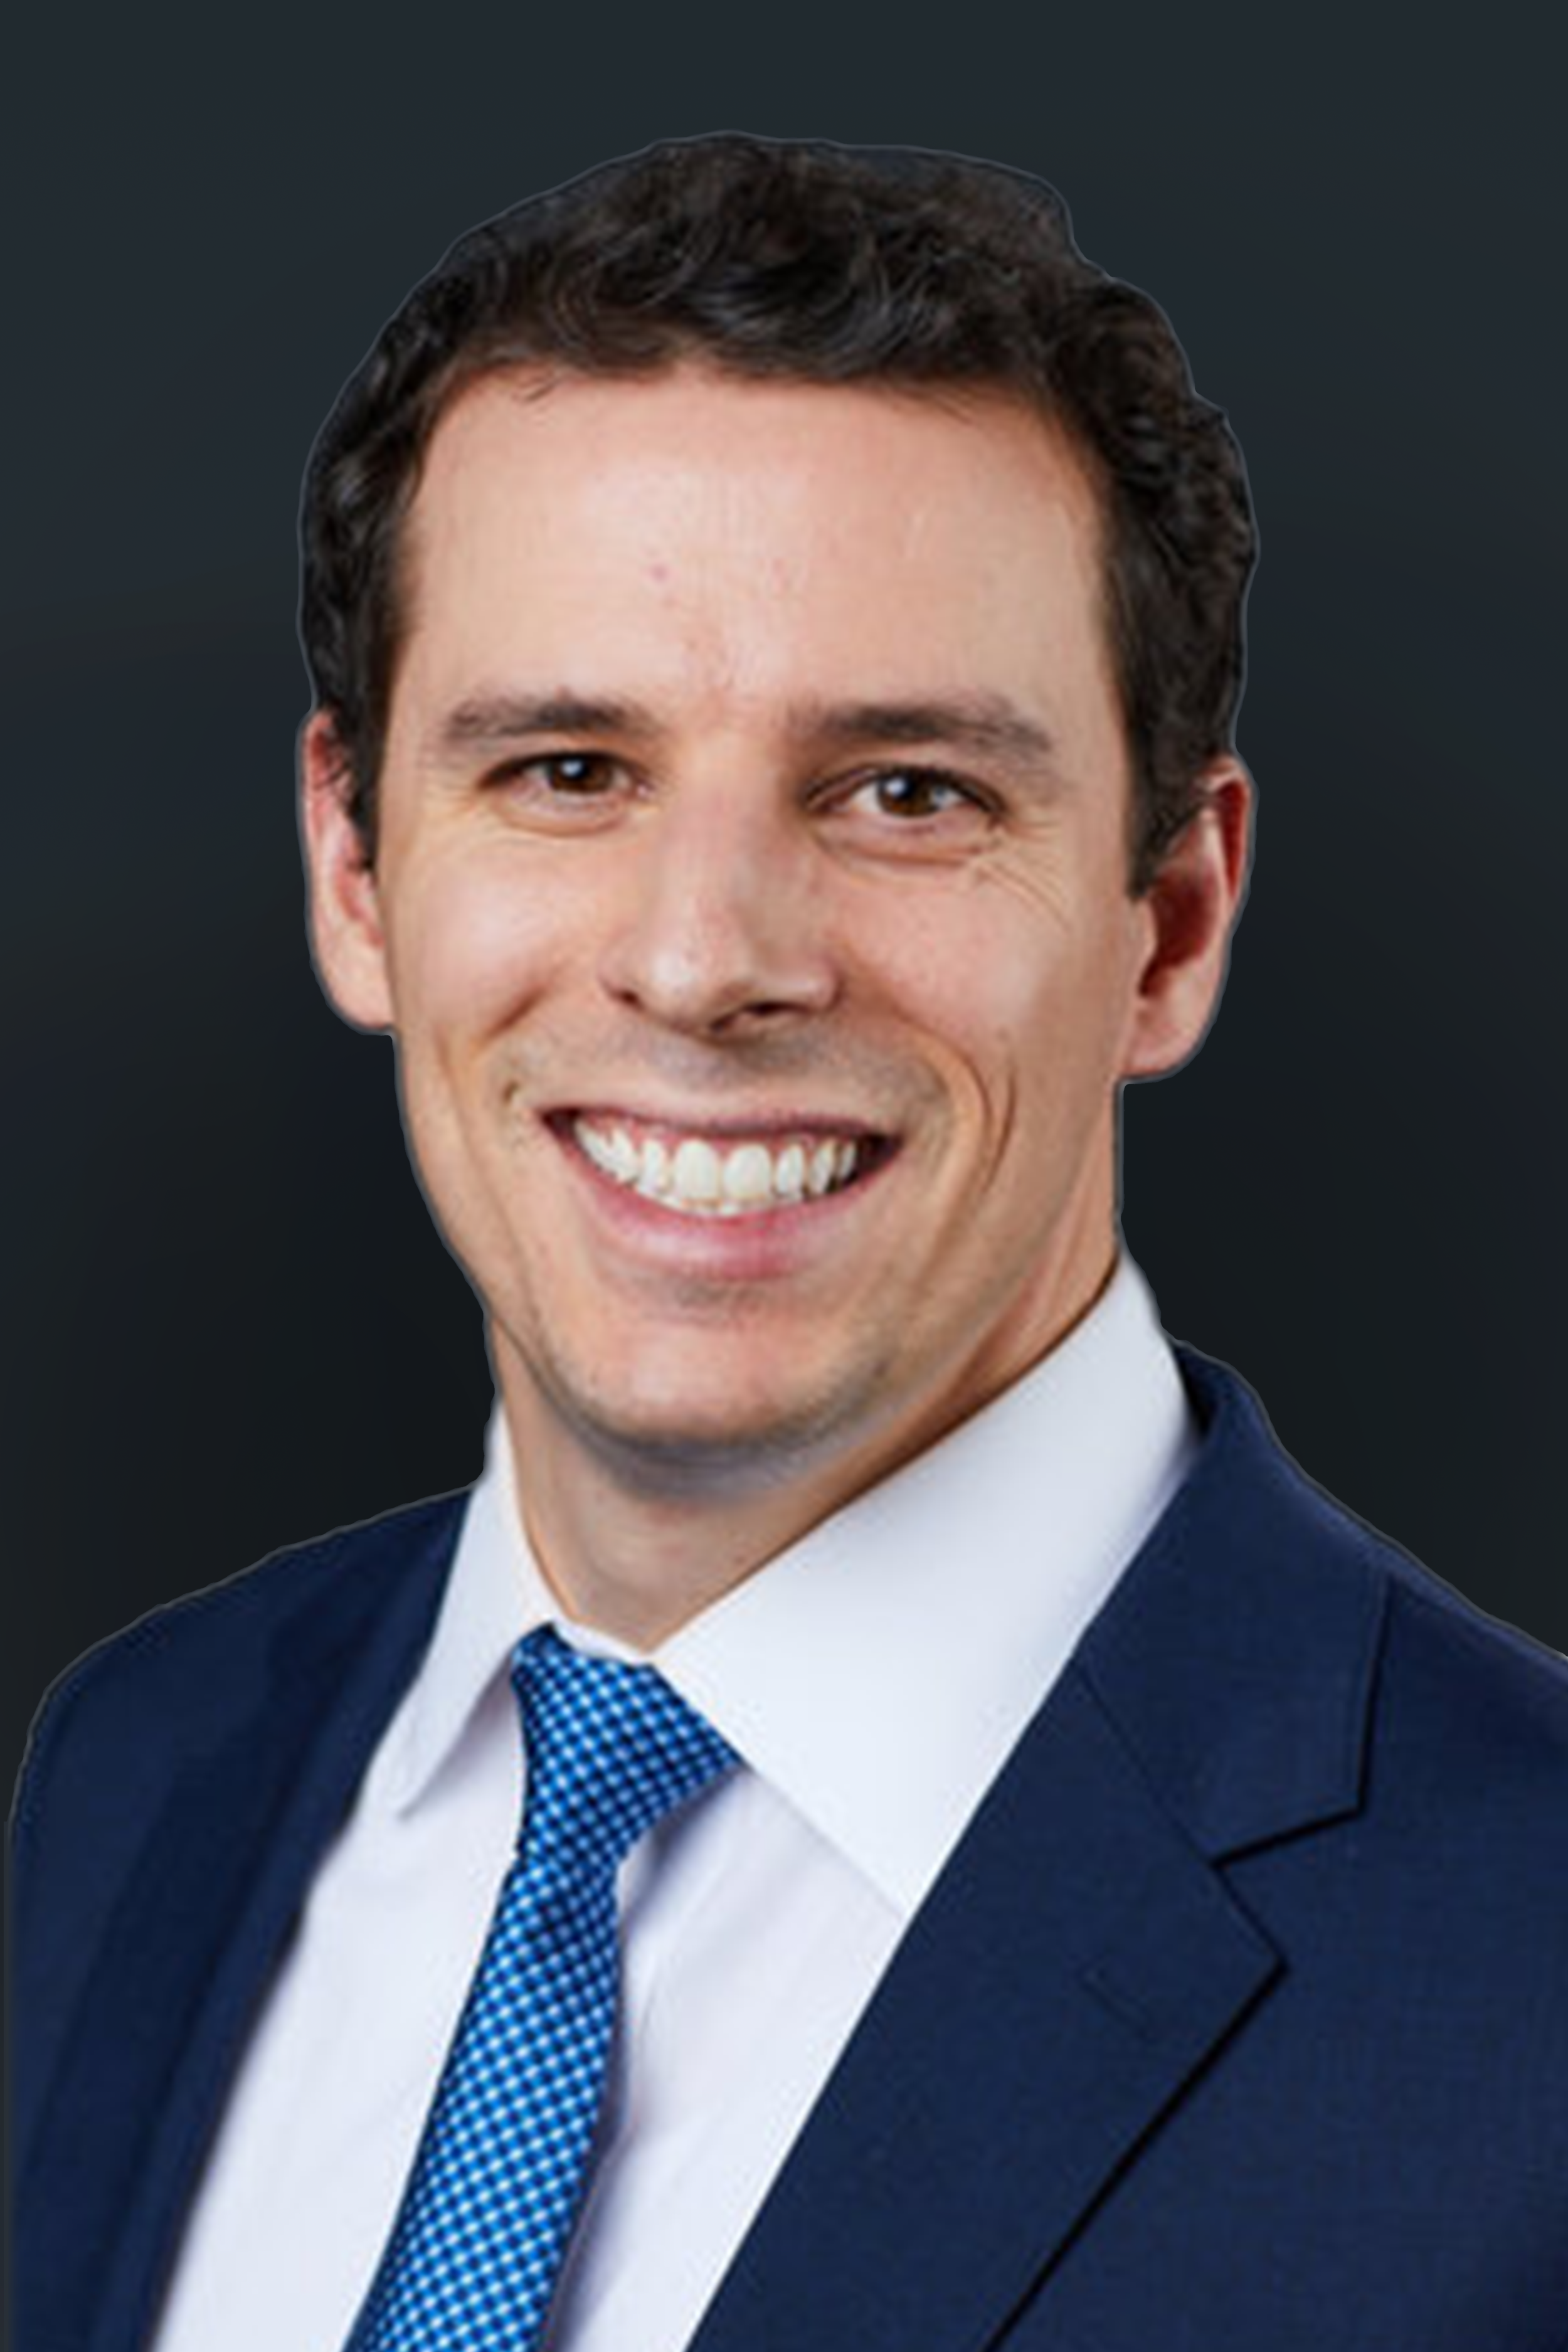 JP Powers, MBA-Finance Lead - 15+ years of experience working in investment management. He has expertise in security analysis, portfolio management and investment due diligence. In addition to client facing responsibilities he has also managed teams while overseeing and implementing investment technology platforms.